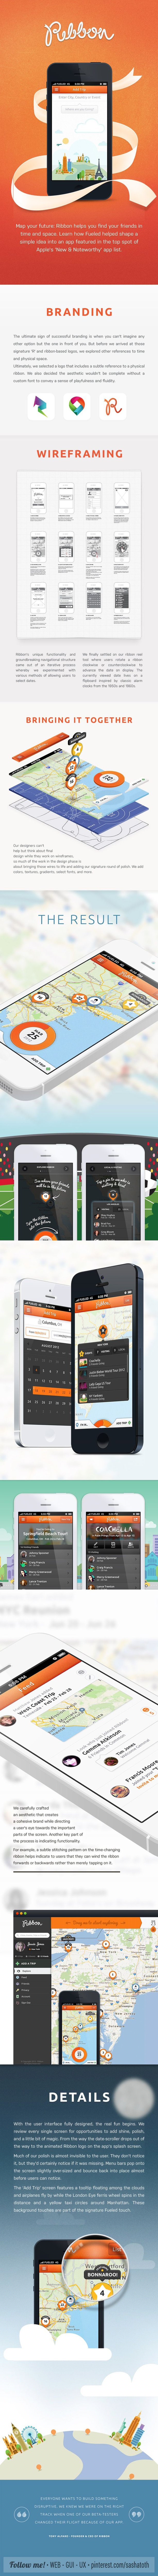 Ribbon - Map your future: Ribbon helps you find your friends in time and space. Learn how Fueled helper shape a simple idea into an app featured in the top spot of Apple's 'New & Noteworthy' app list. by Fueled , via Behance *** #app #gui #ui #behance